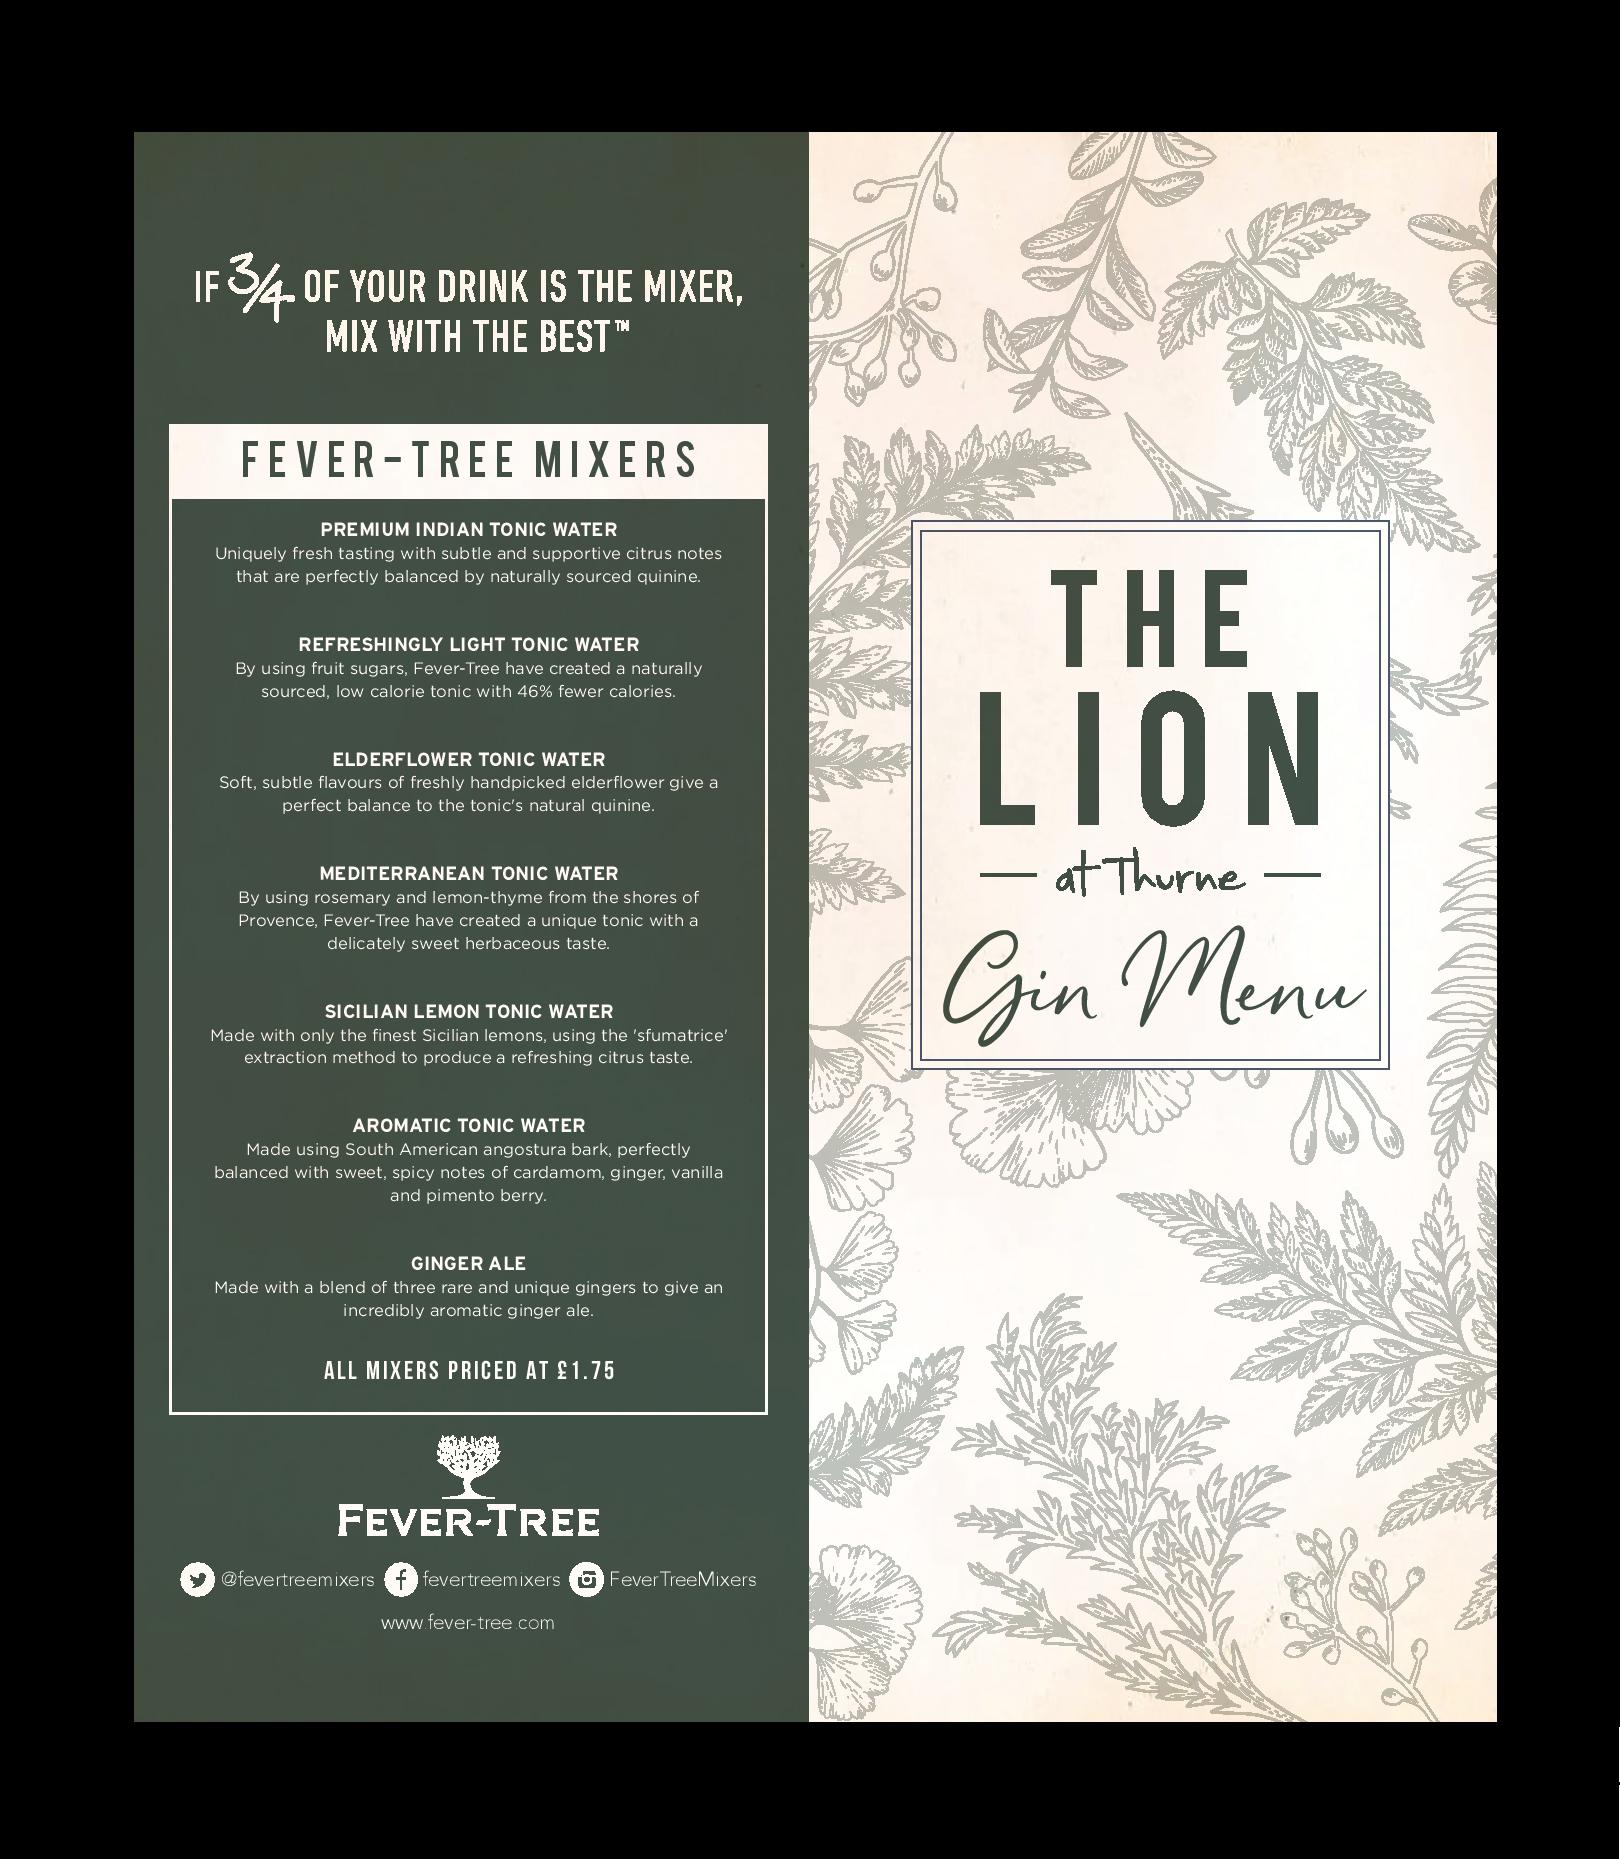 The Lion at Thurne GIN MENU 2019 (1)-page-001.jpg